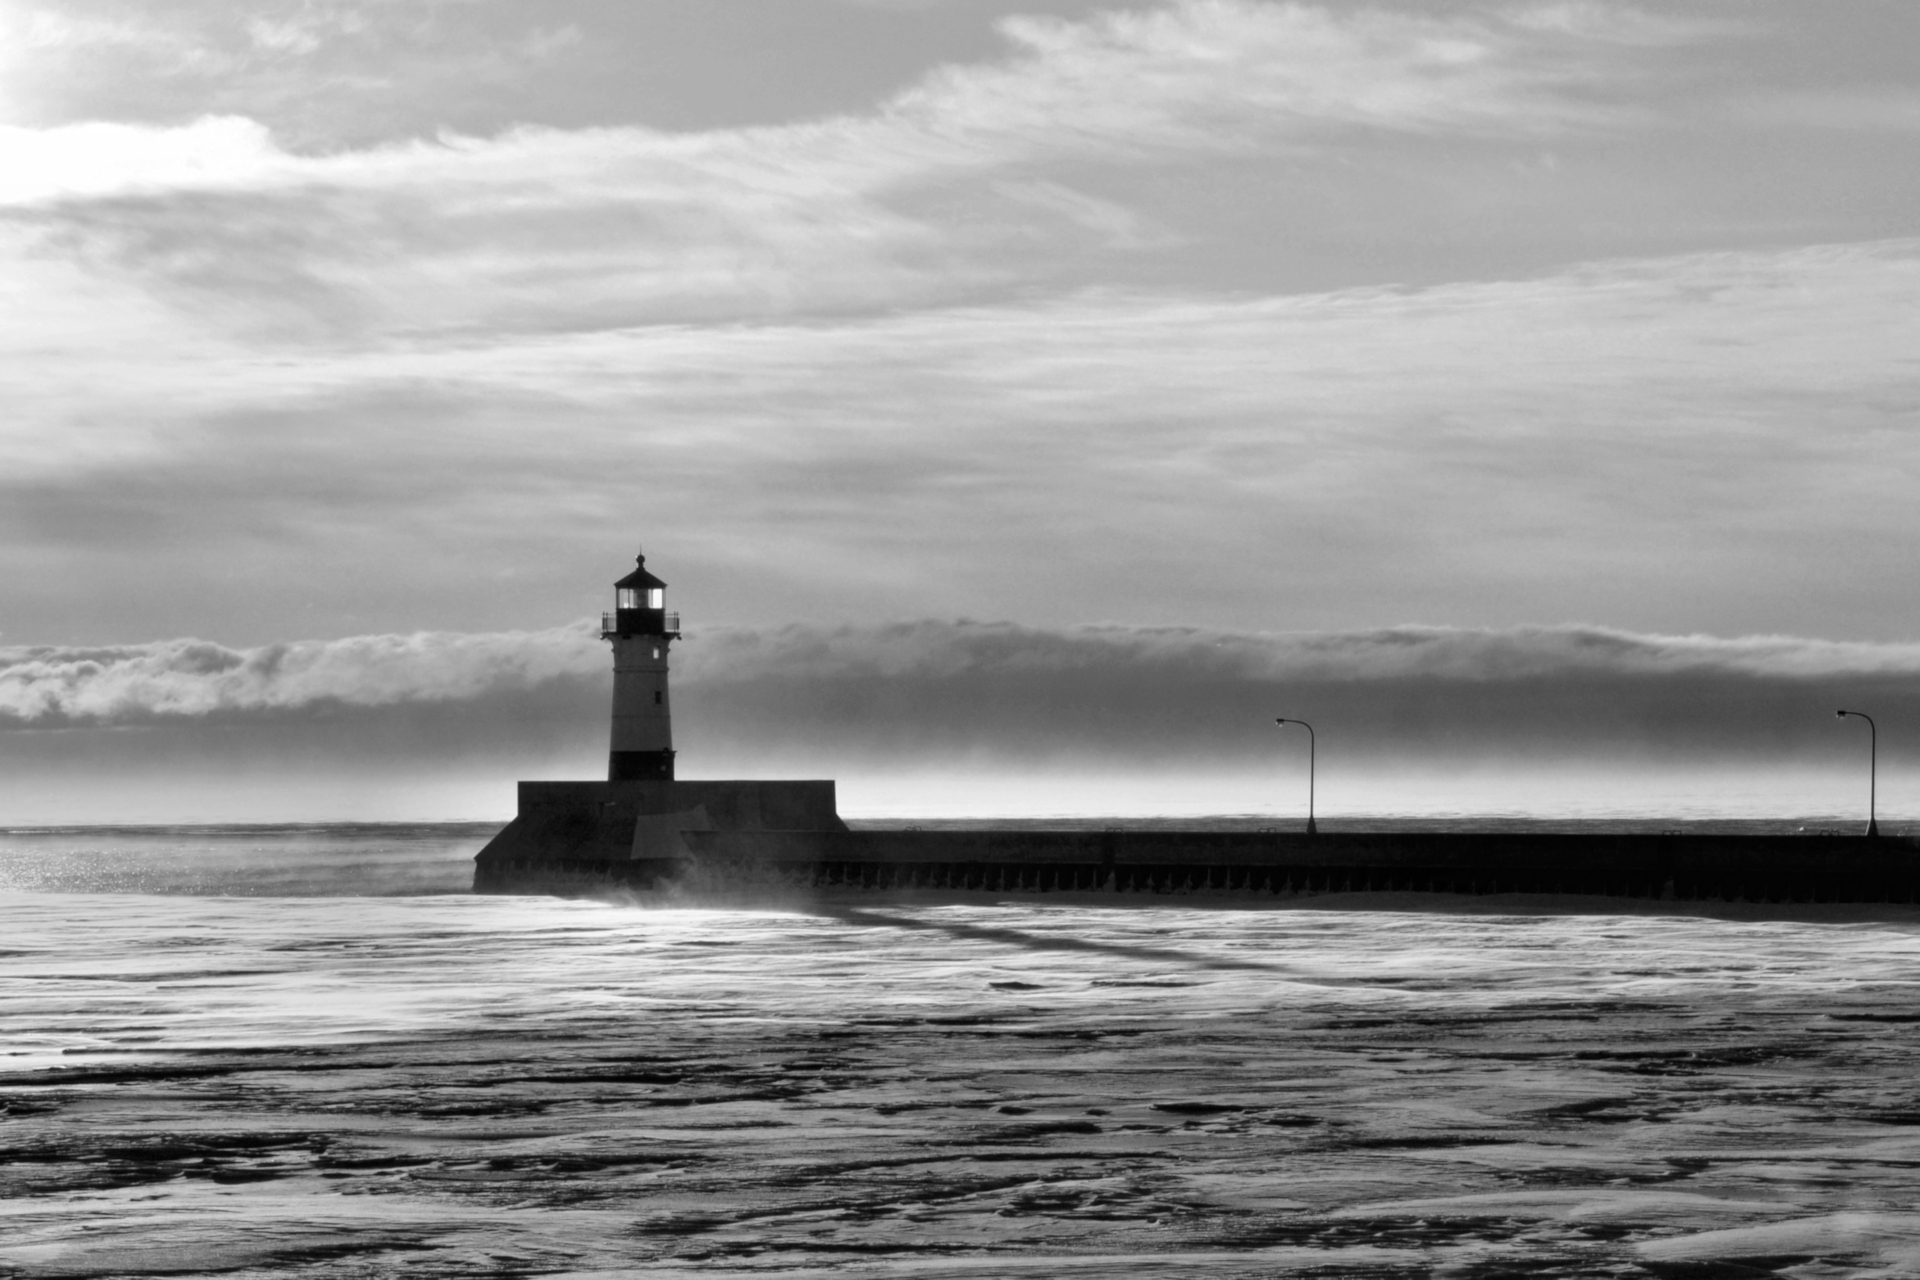 Duluth light - Monochrome Print (Open) - Name Withheld Per Request